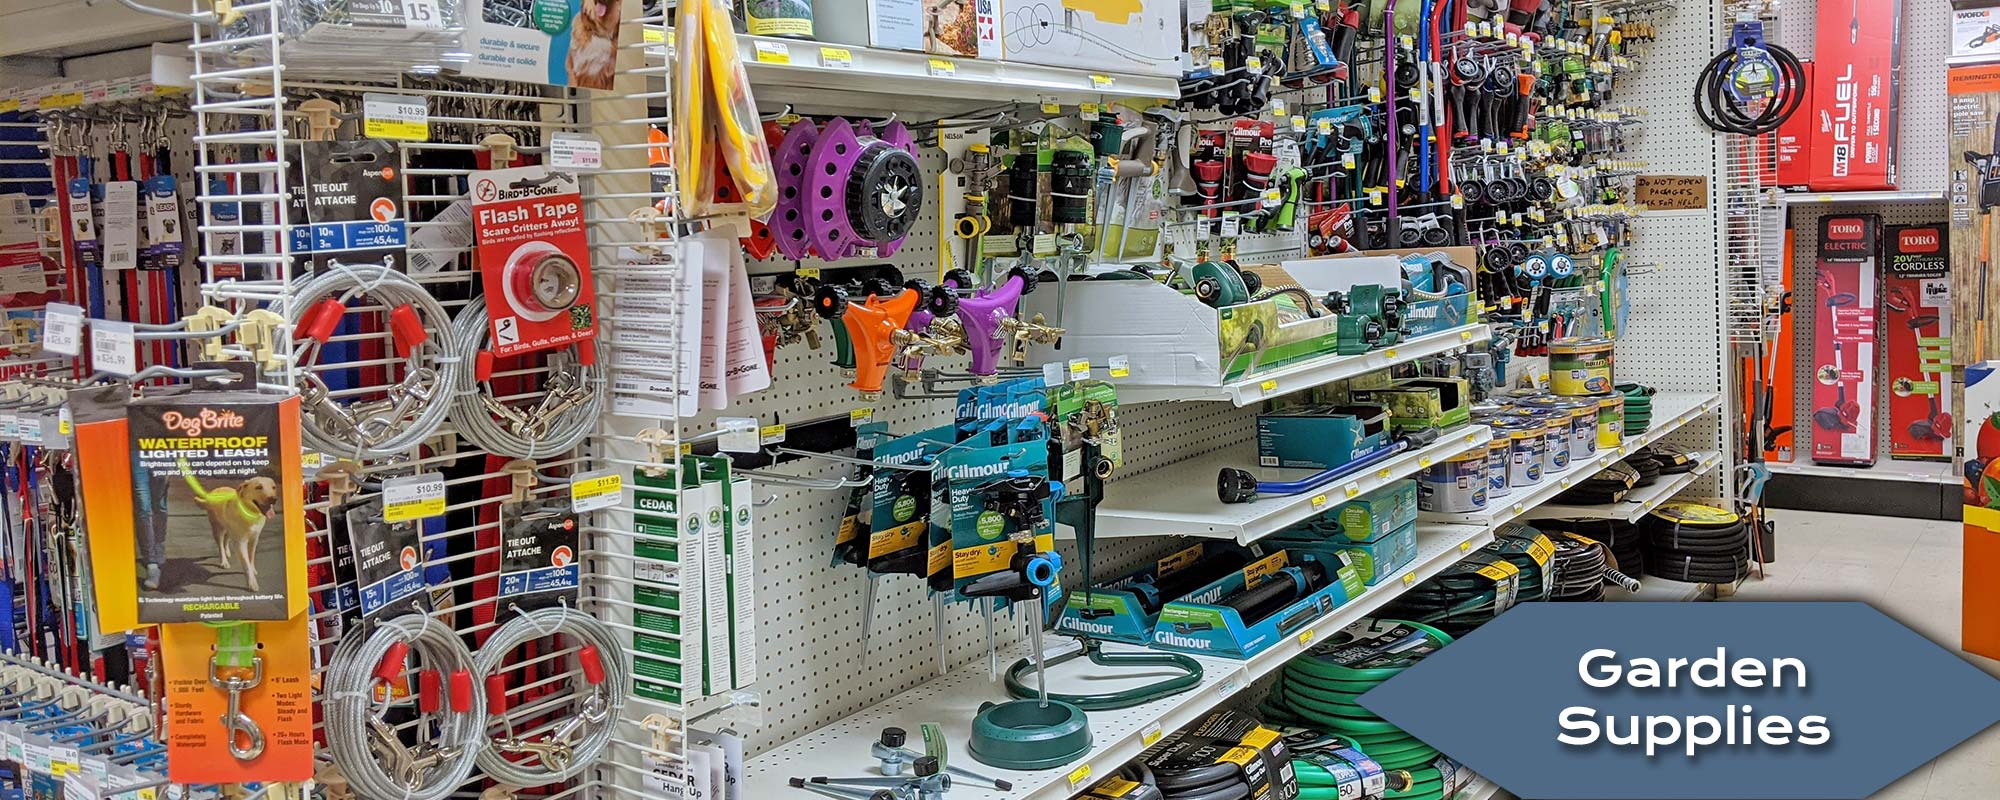 Shop and Buy Gardening Supplies at Harbor Hardware Store in Door County, WI